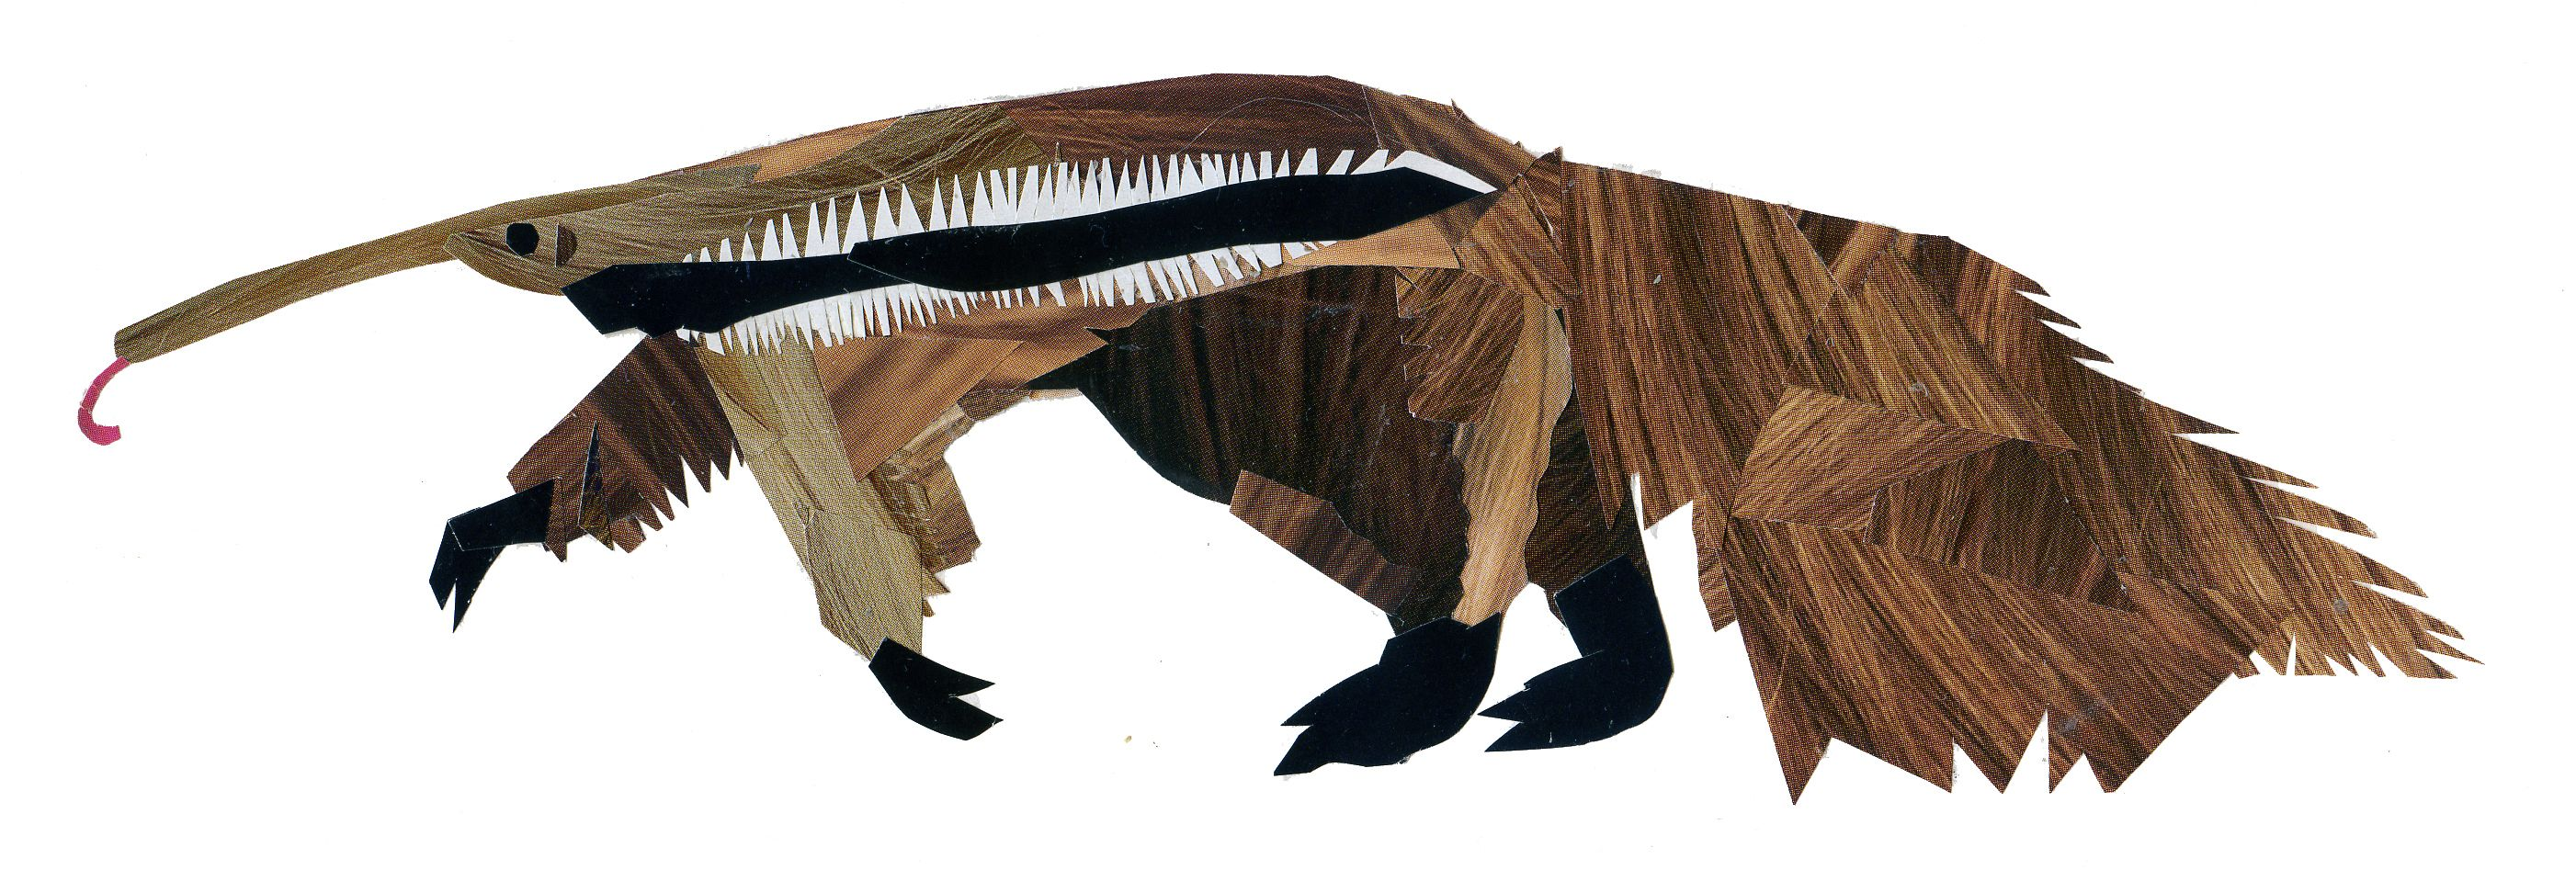 The Anteater from Roald Dahl's 'Dirty Beasts' - Holly T Burrows